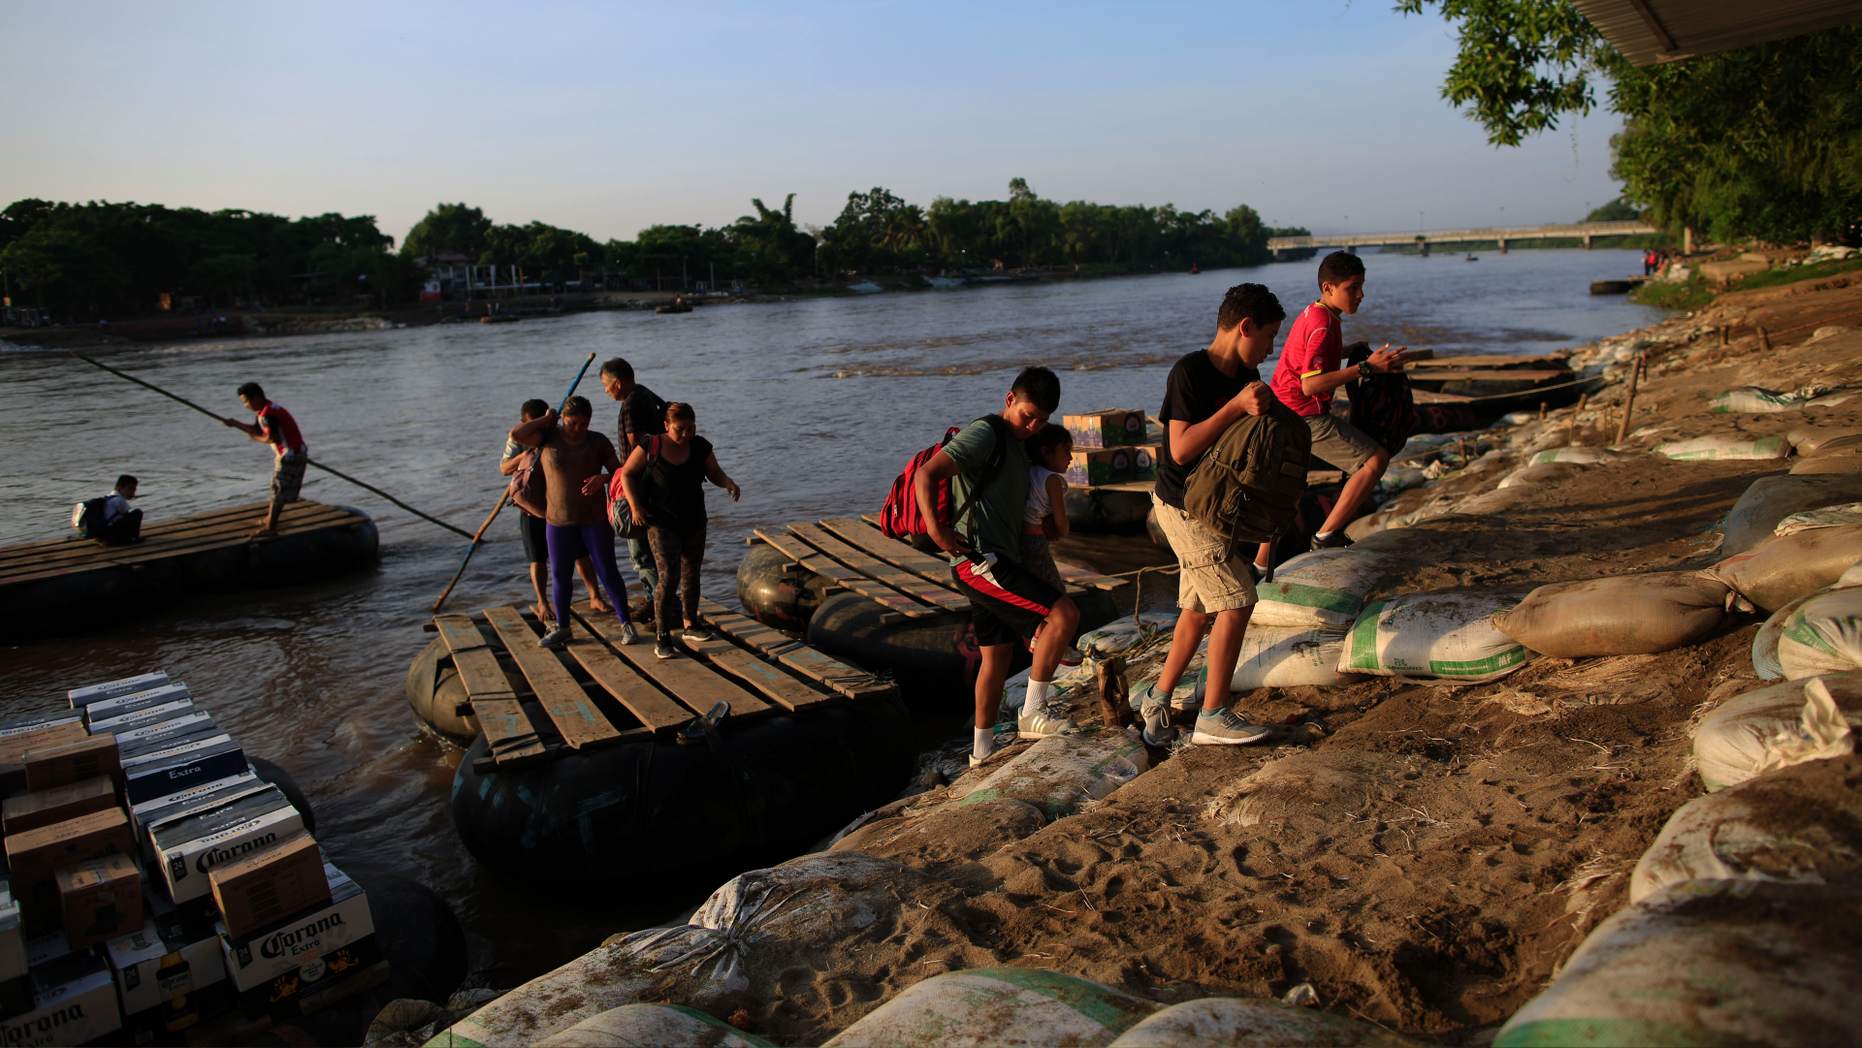 A group of migrants arriving from Guatemala disembark from a raft in Ciudad Hidalgo, Mexico, Tuesday, June 18, 2019. The number of migrants taking rafts at the busy Ciudad Hidalgo crossing point appears to have decreased significantly in recent days amid fears of a pending deployment of the National Guard along the southern border. (AP Photo/Rebecca Blackwell)